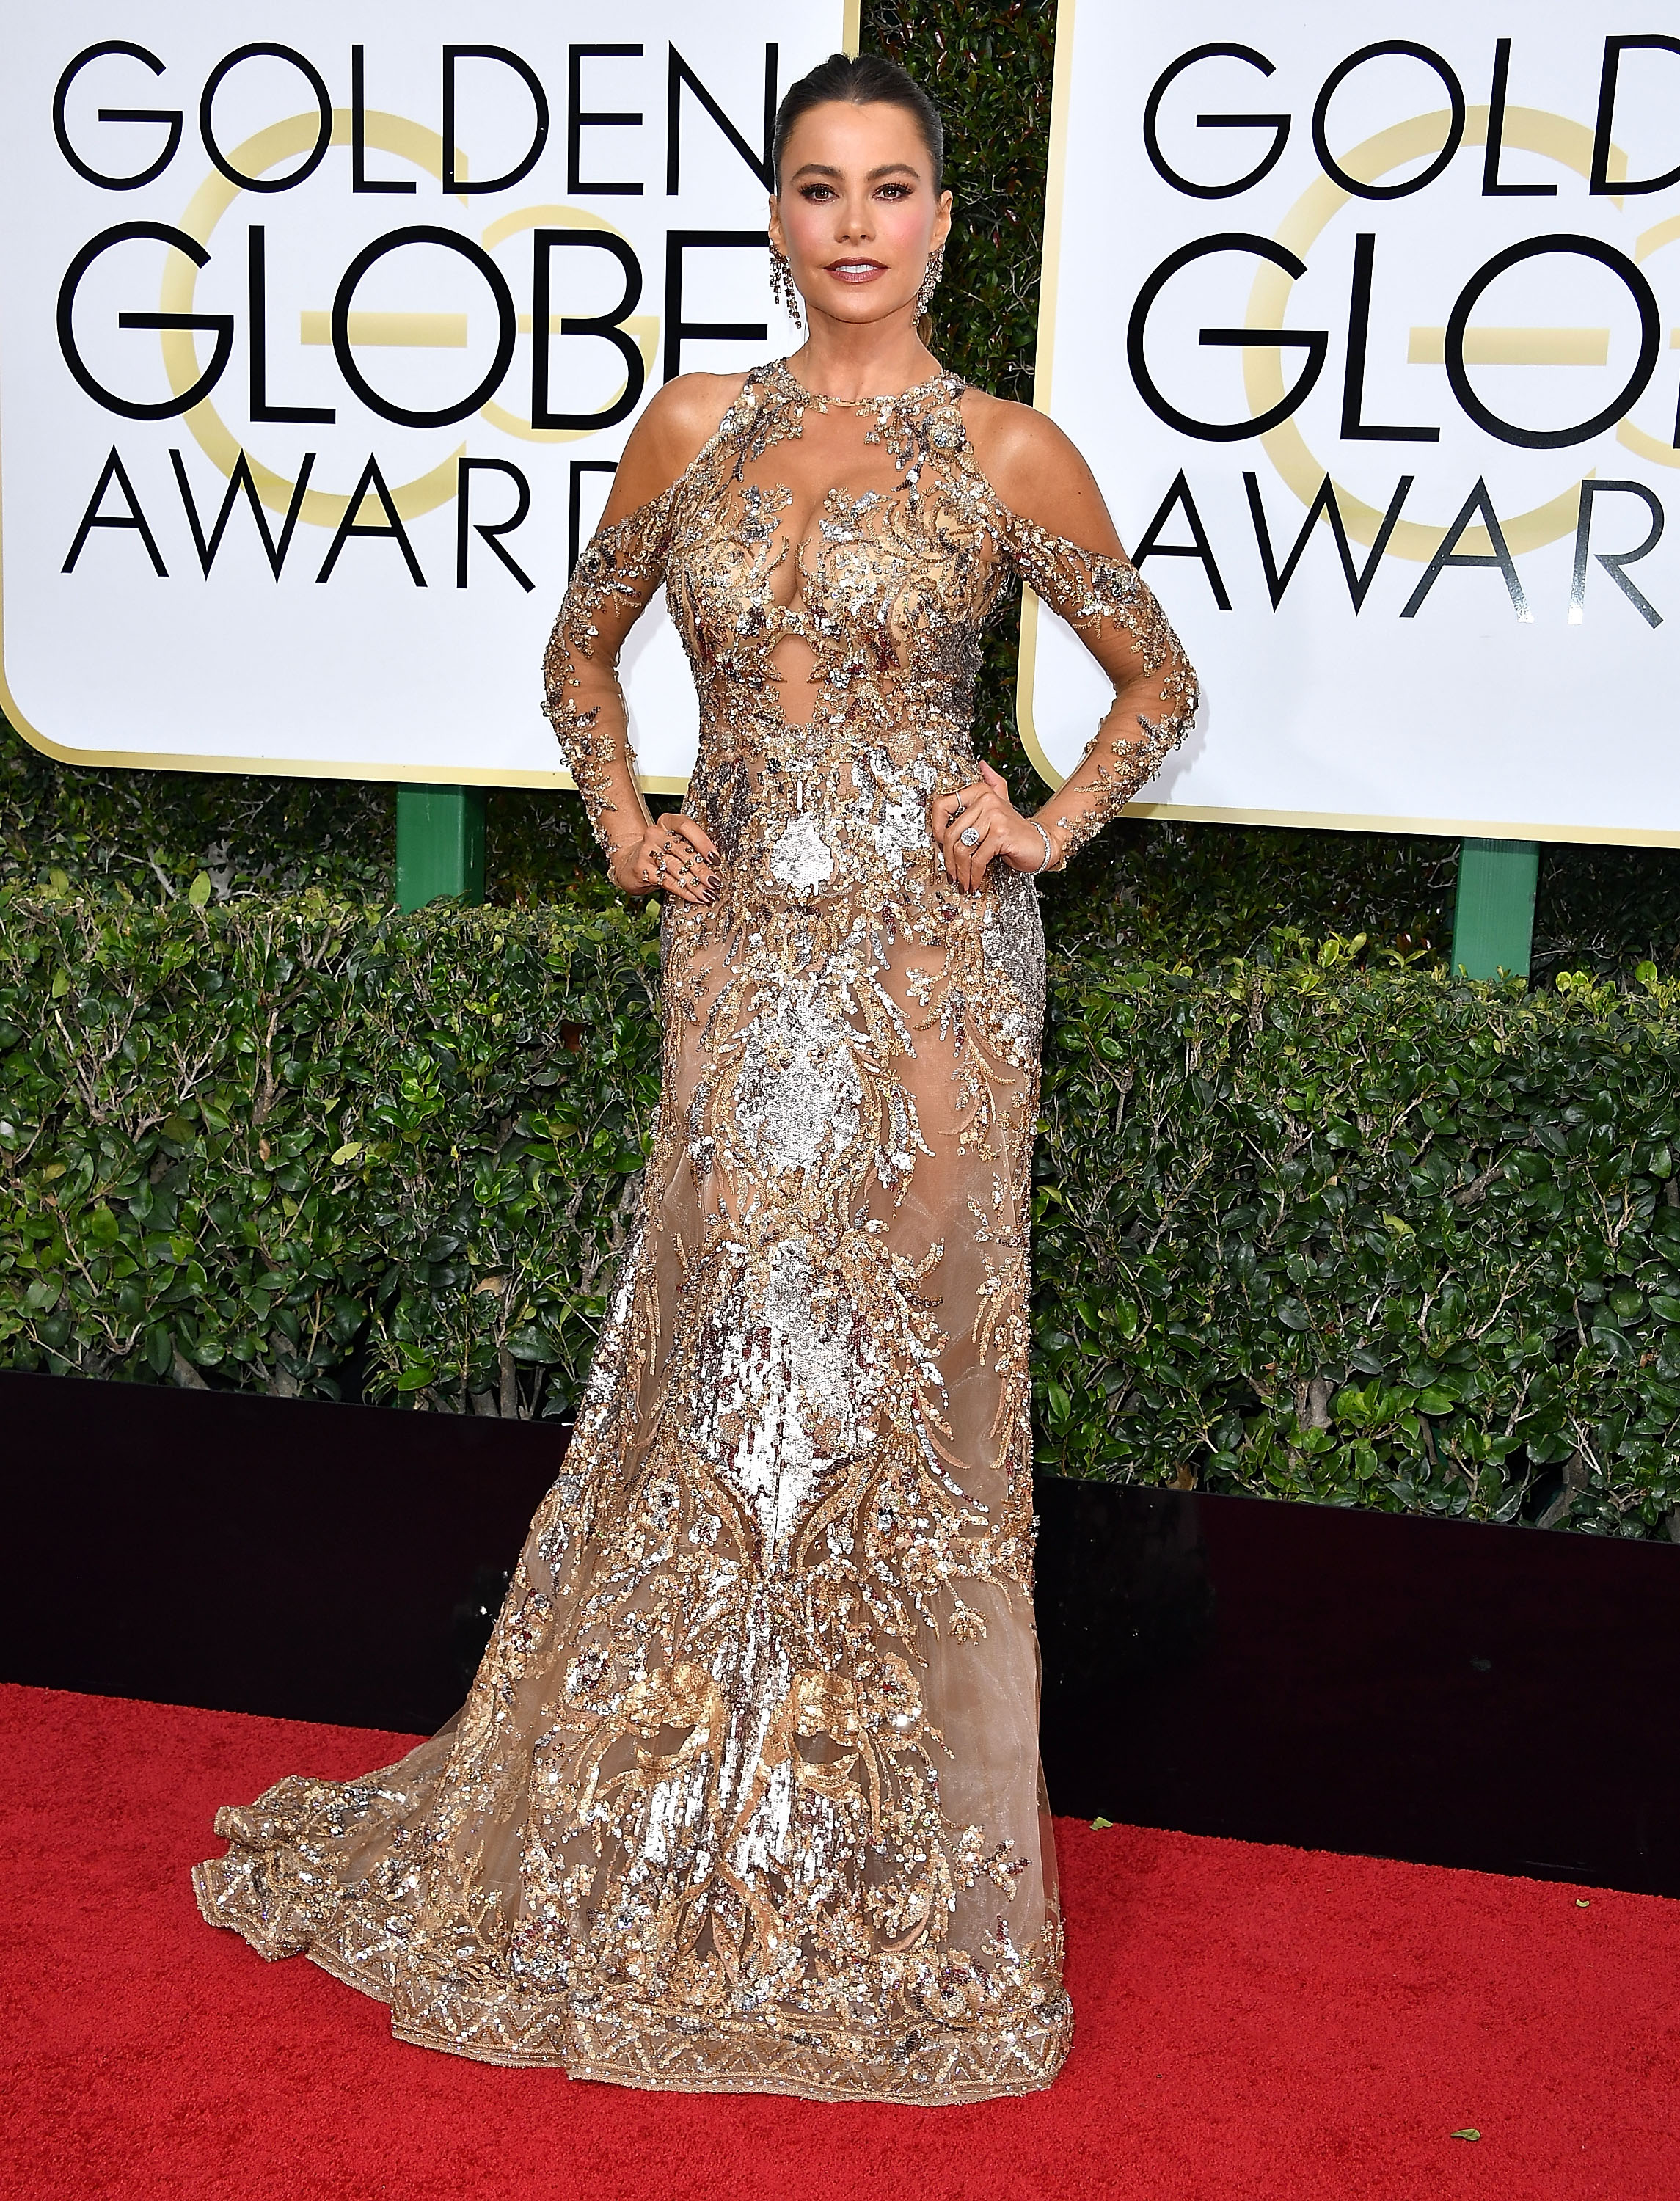 BEVERLY HILLS, CA - JANUARY 08: Sofia Vergara arrives at the 74th Annual Golden Globe Awards at The Beverly Hilton Hotel on January 8, 2017 in Beverly Hills, California. (Photo by Steve Granitz/WireImage)